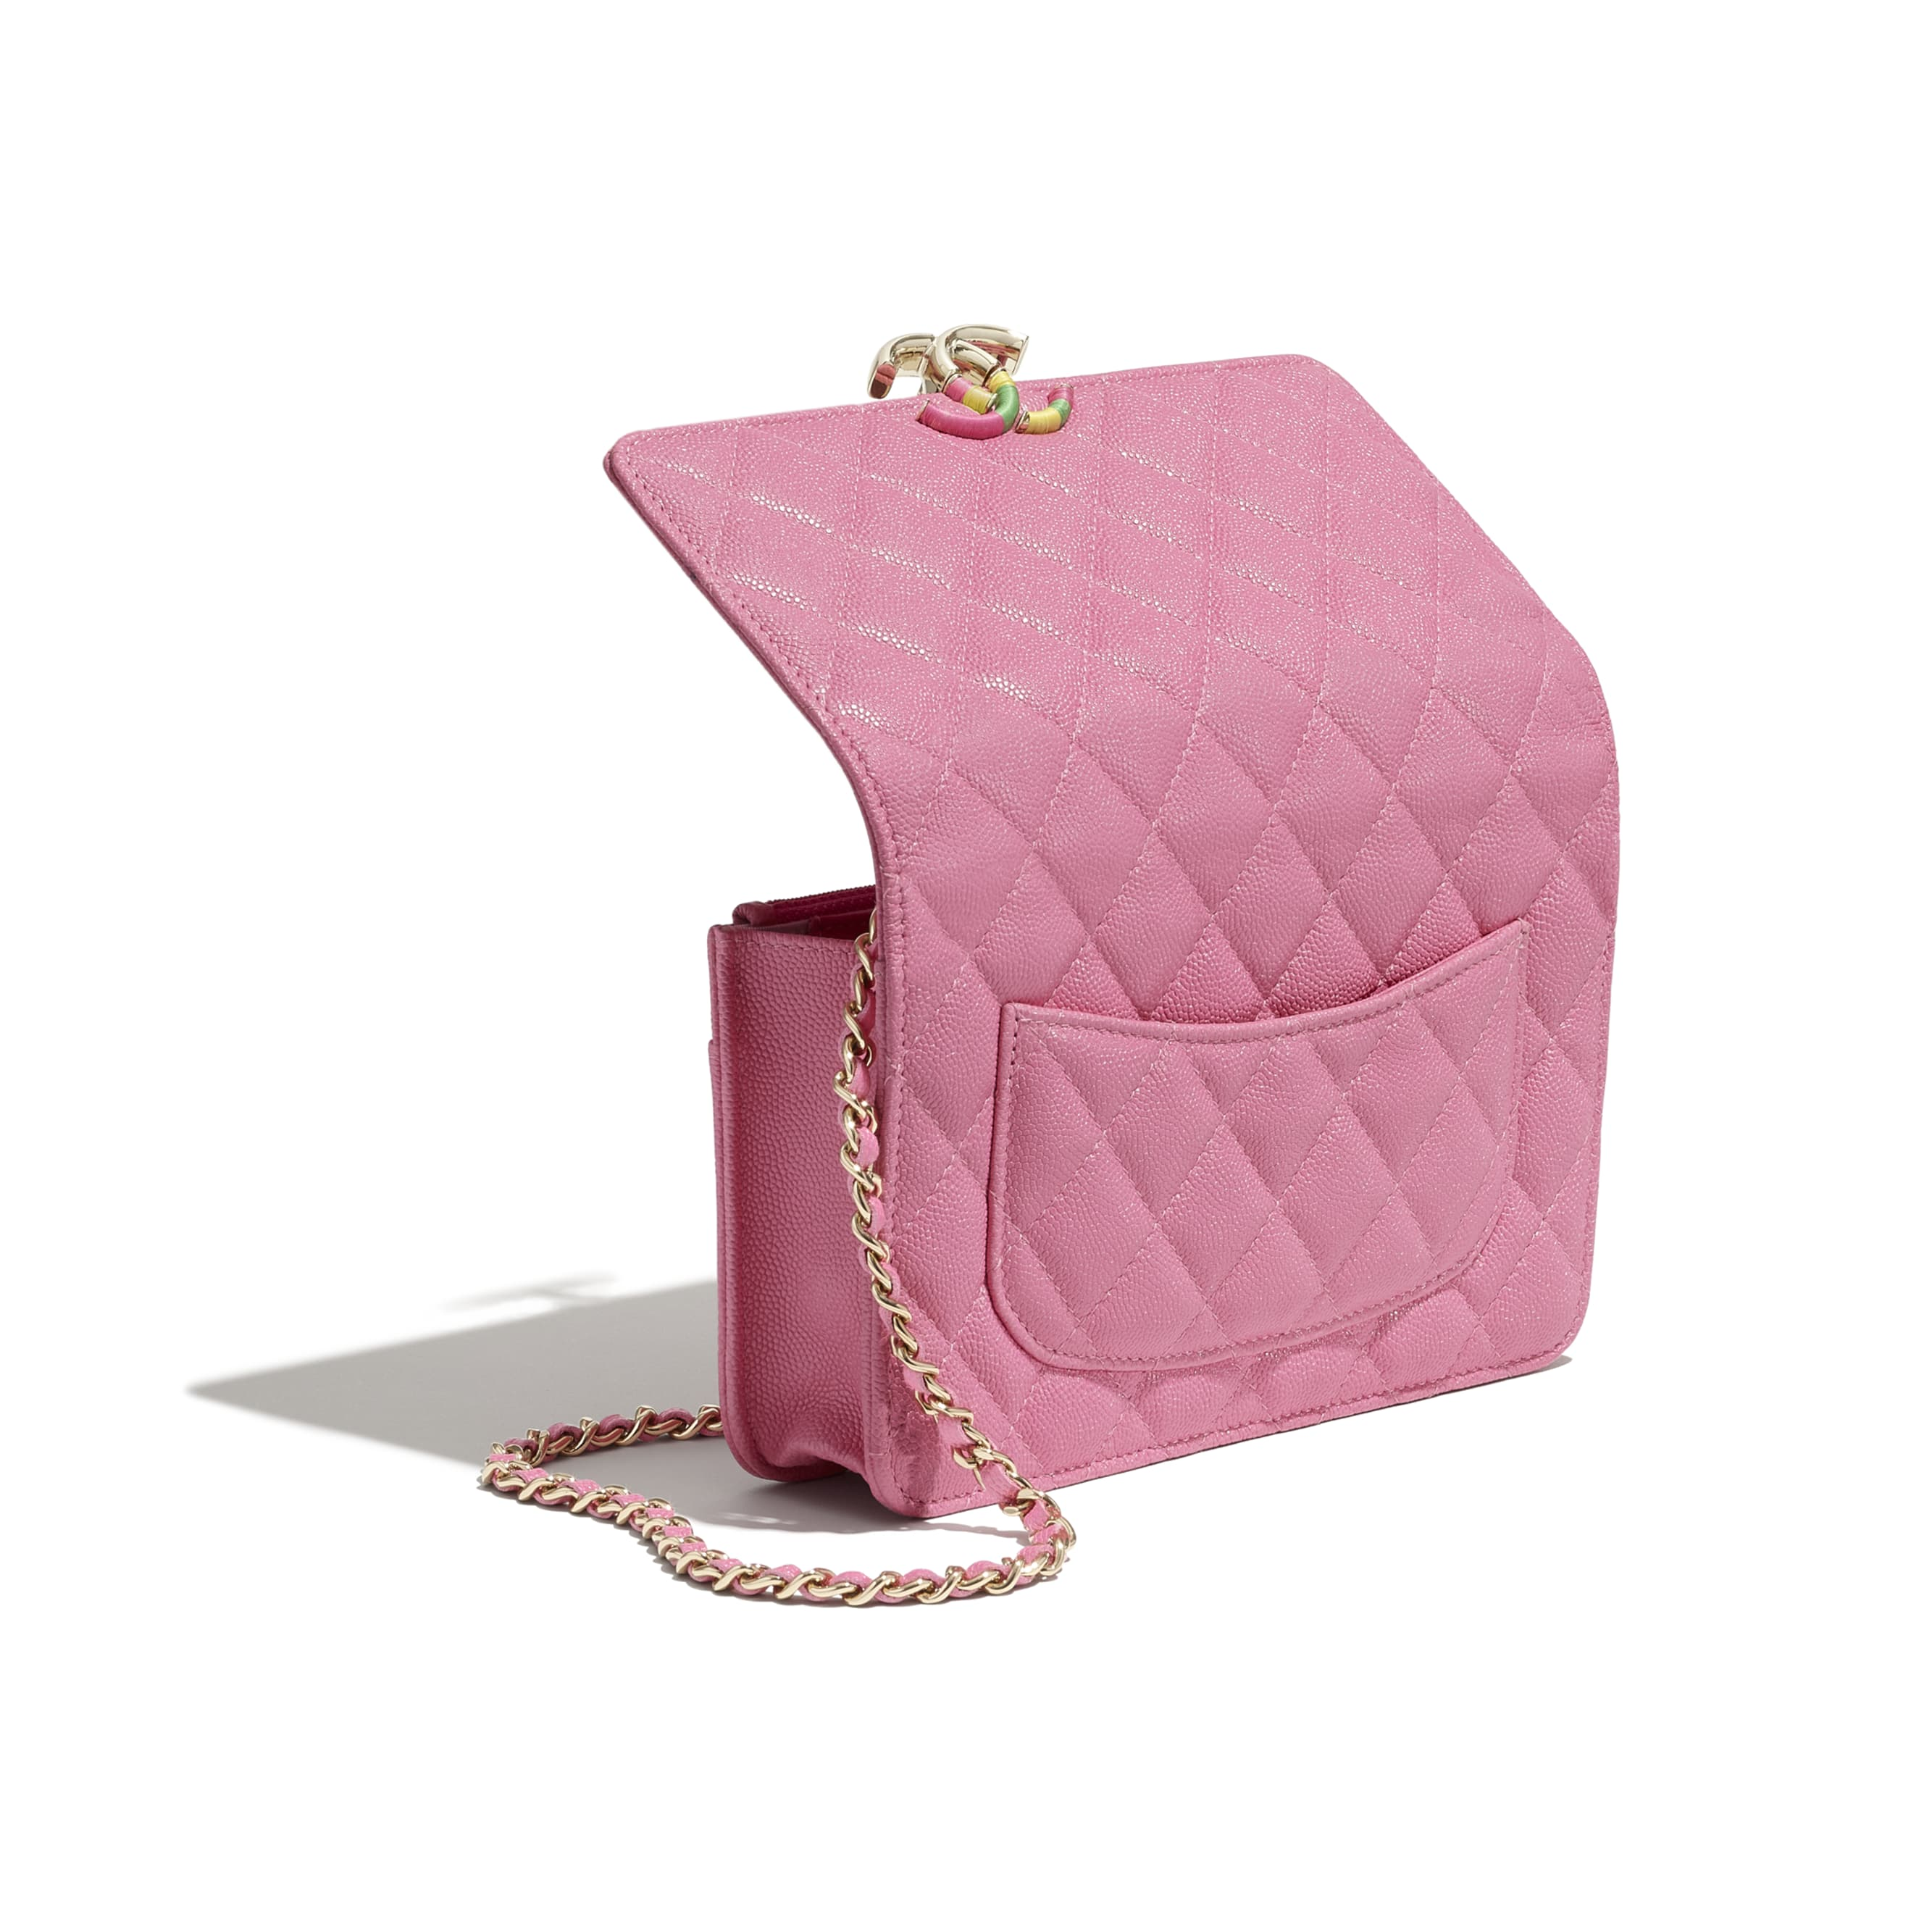 Wallet On Chain - Pink - Grained Calfskin & Gold-Tone Metal - CHANEL - Extra view - see standard sized version